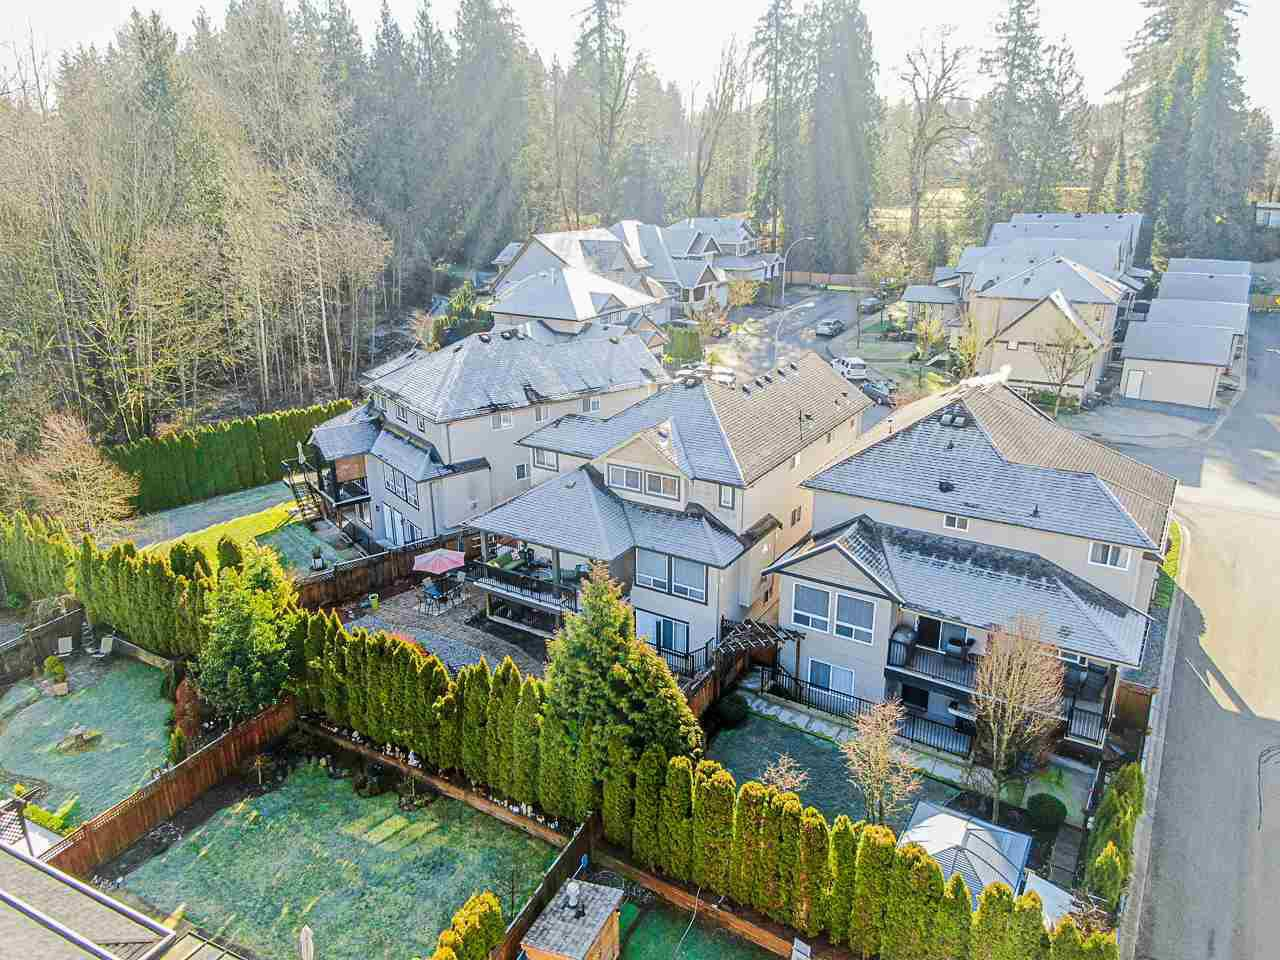 Main Photo: 21631 92 Avenue in Langley: Walnut Grove House for sale : MLS®# R2477335